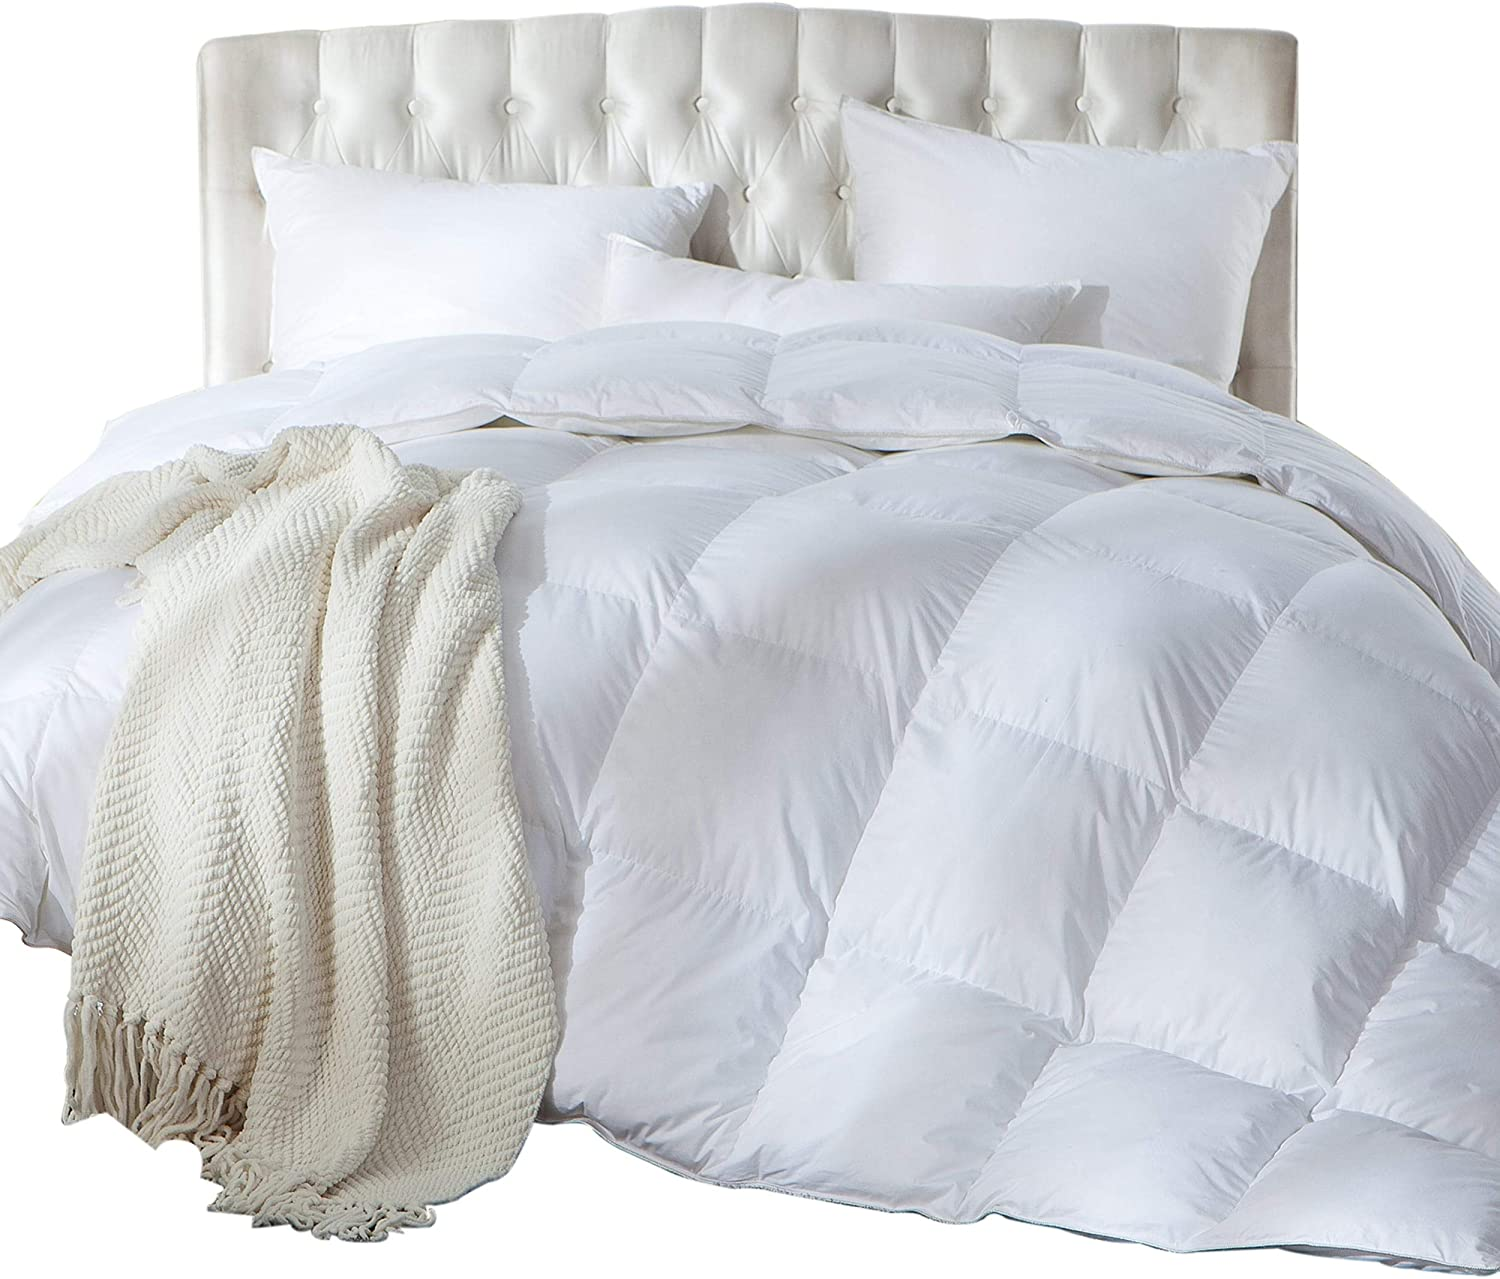 luxurious full queen size siberian goose down